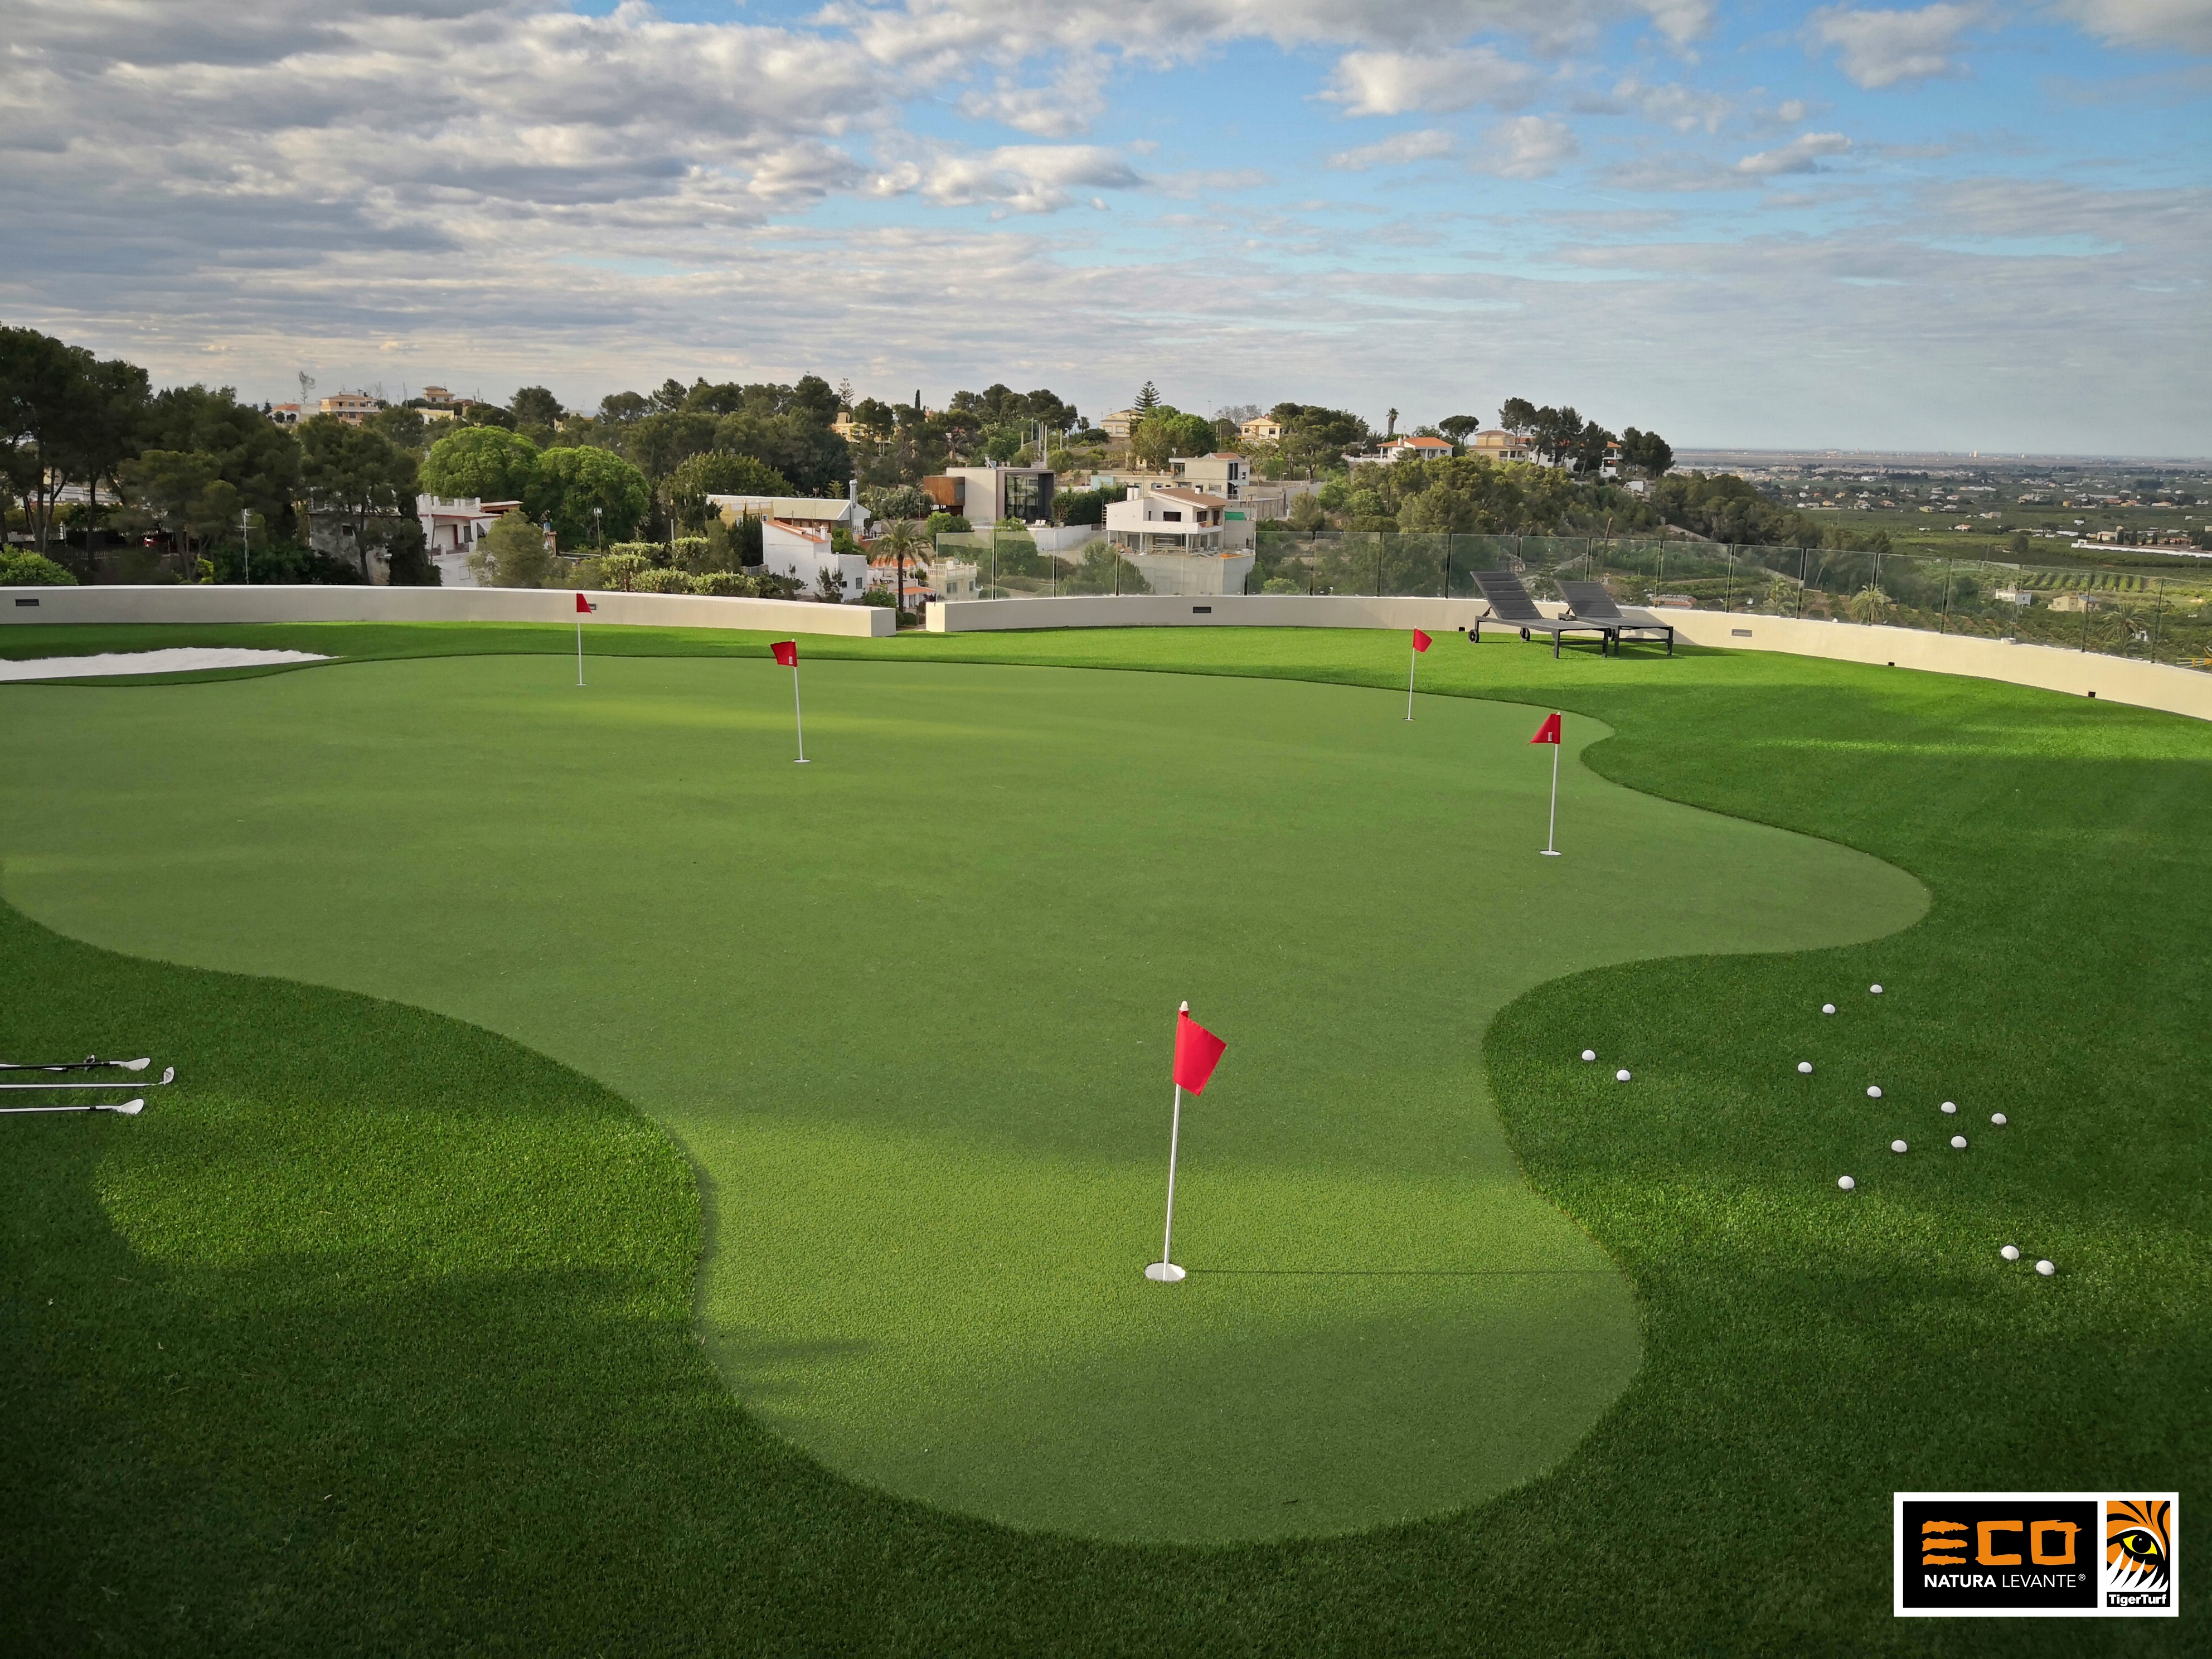 Putting Green Pro - Golf Valencia